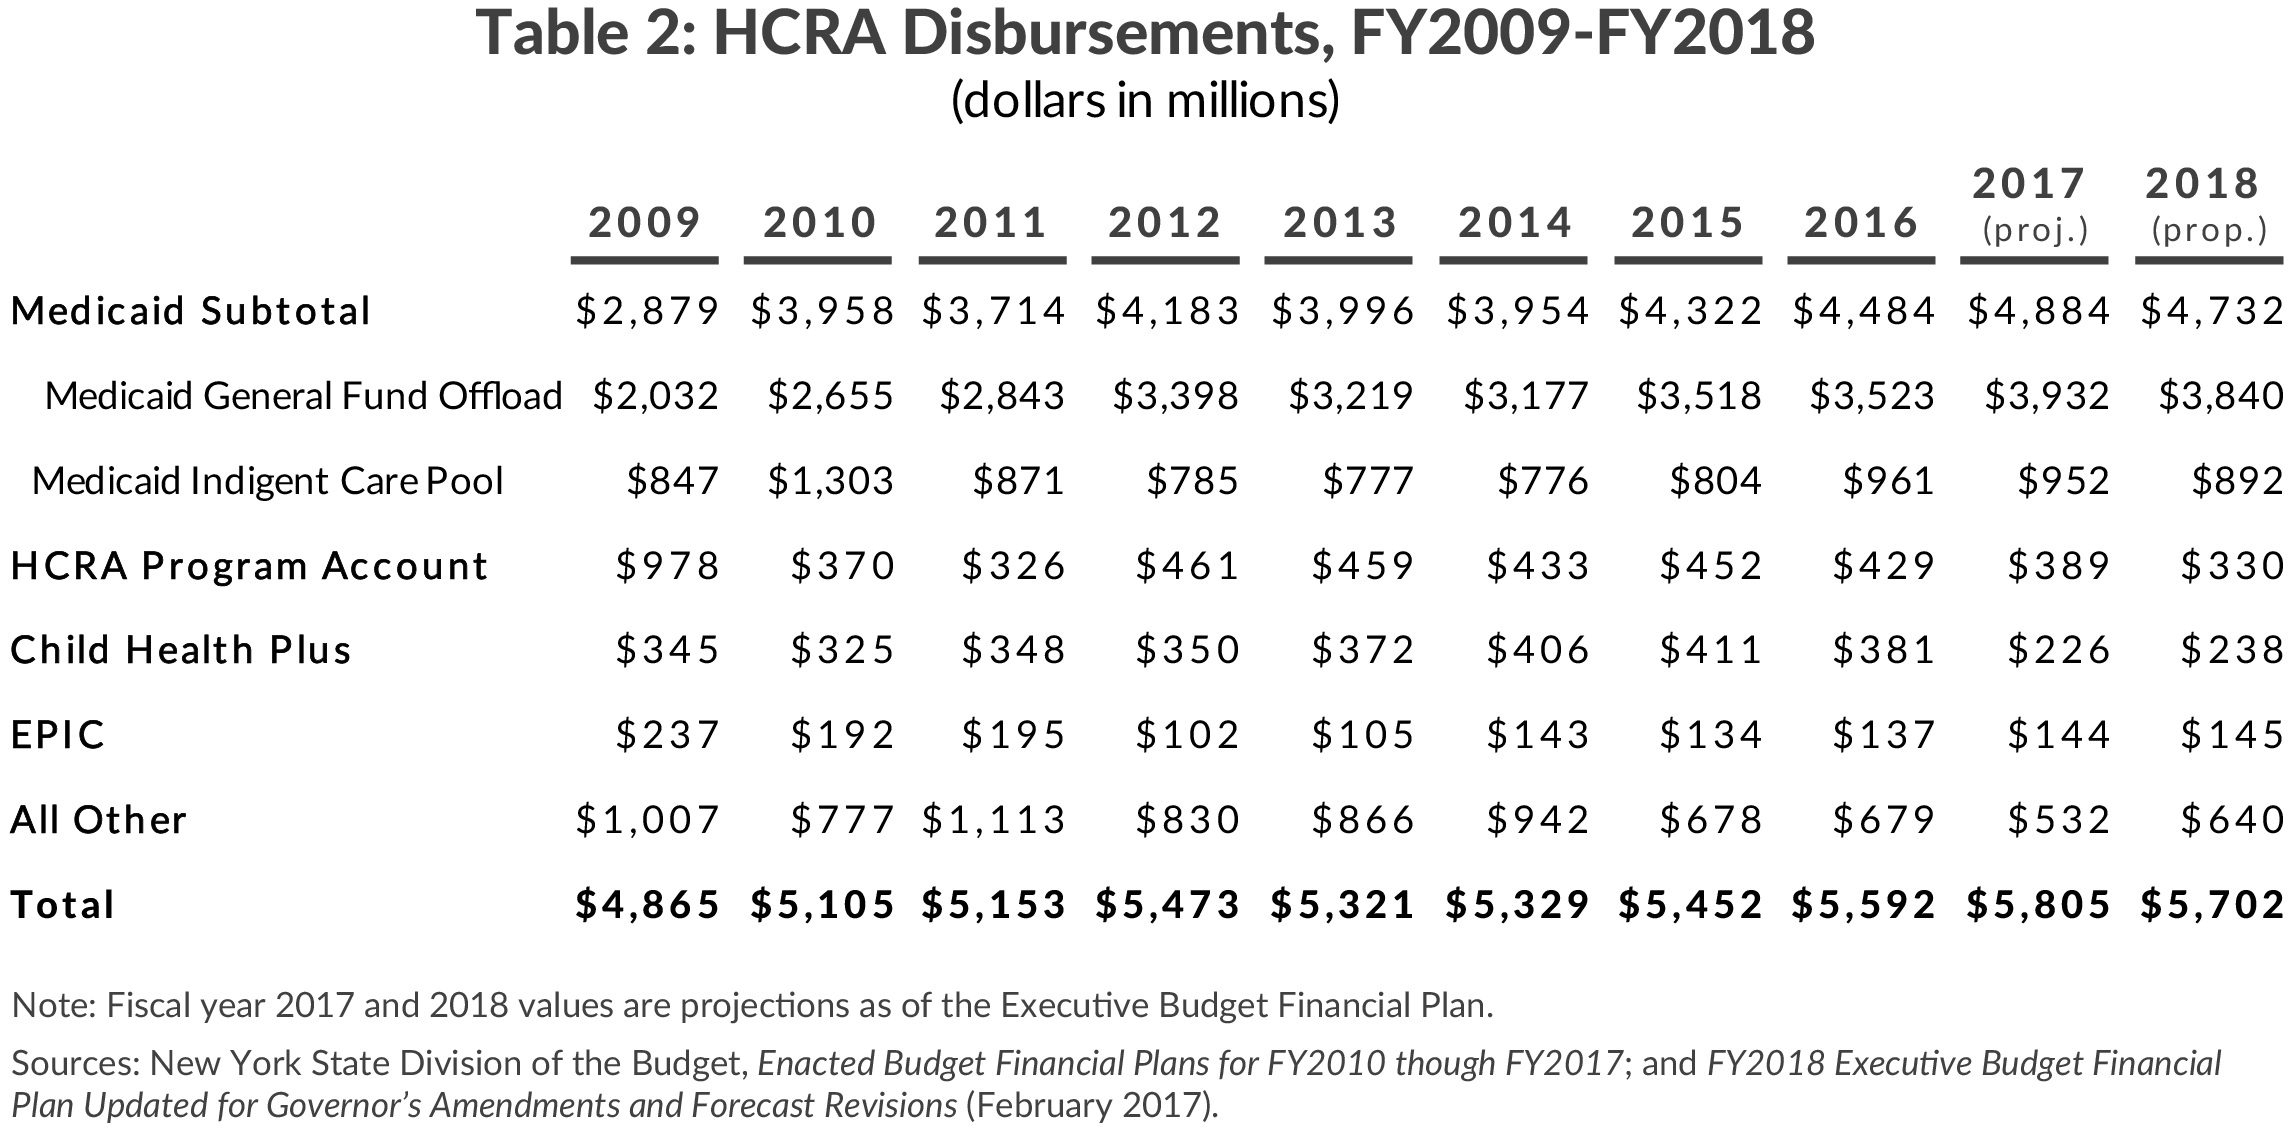 Table 2: HCRA Disbursements, FY2009-FY2018